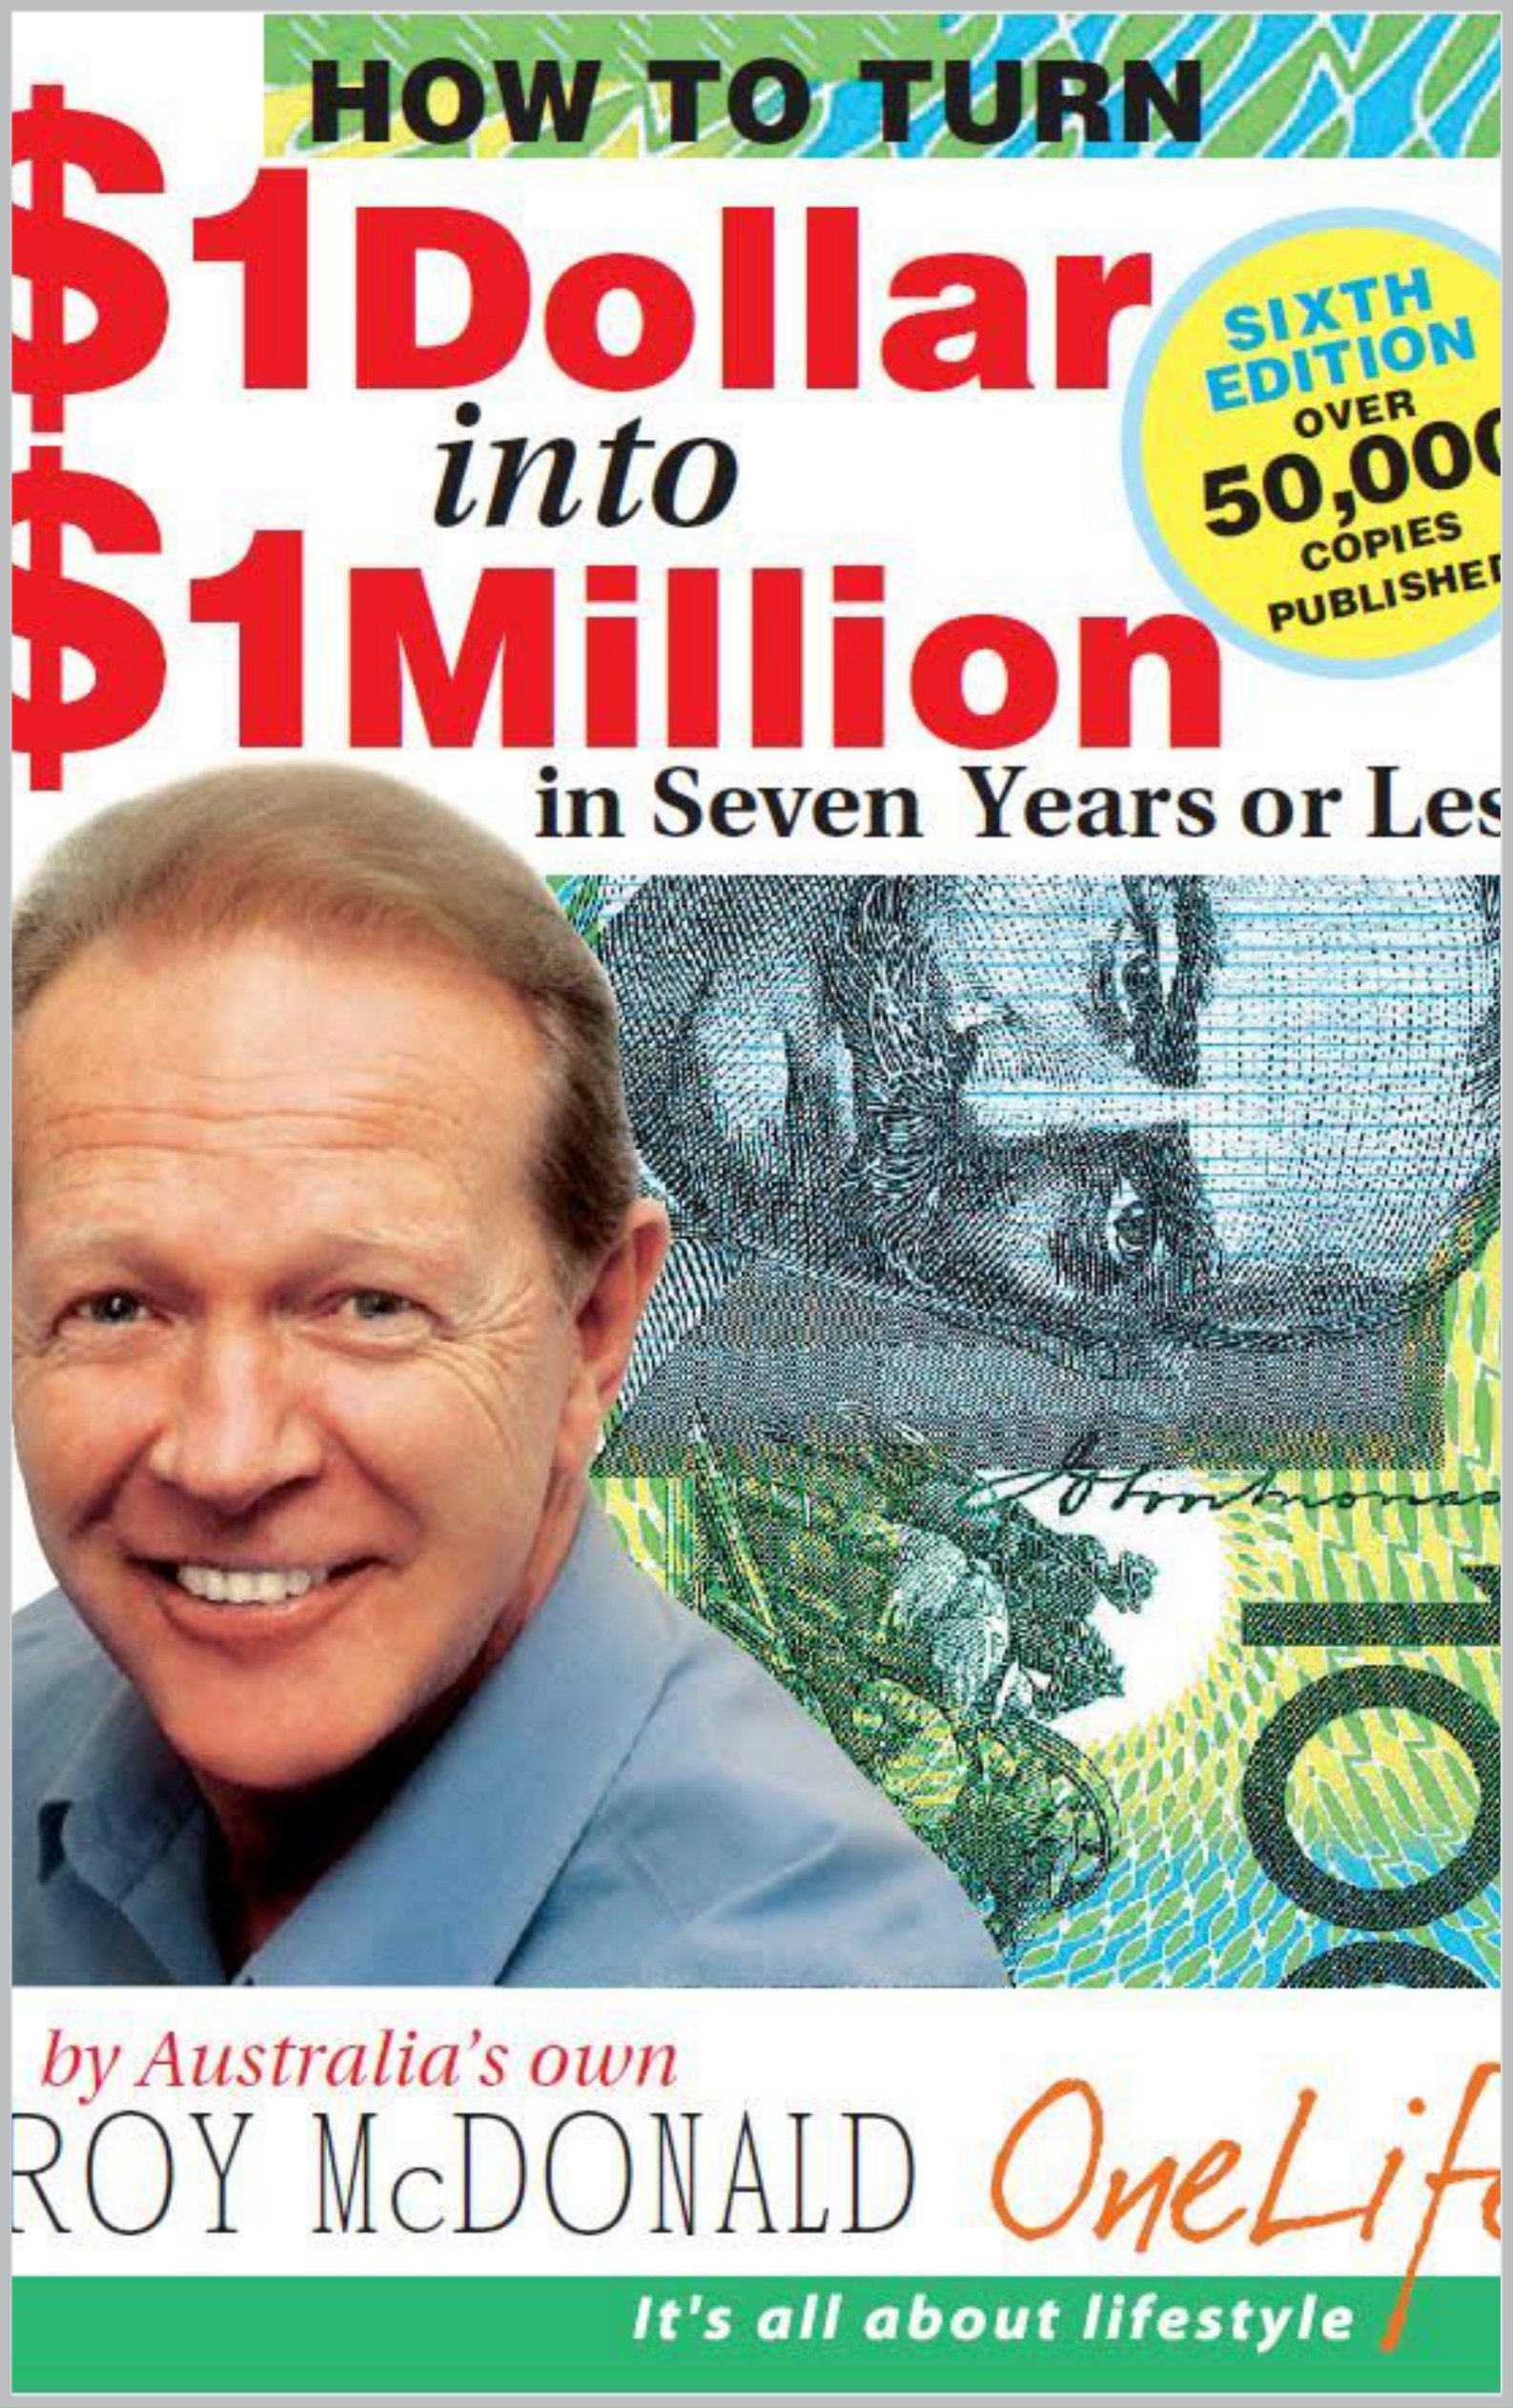 How to Turn $1 Dollar into $1 Million Dollars in 7 years or Less